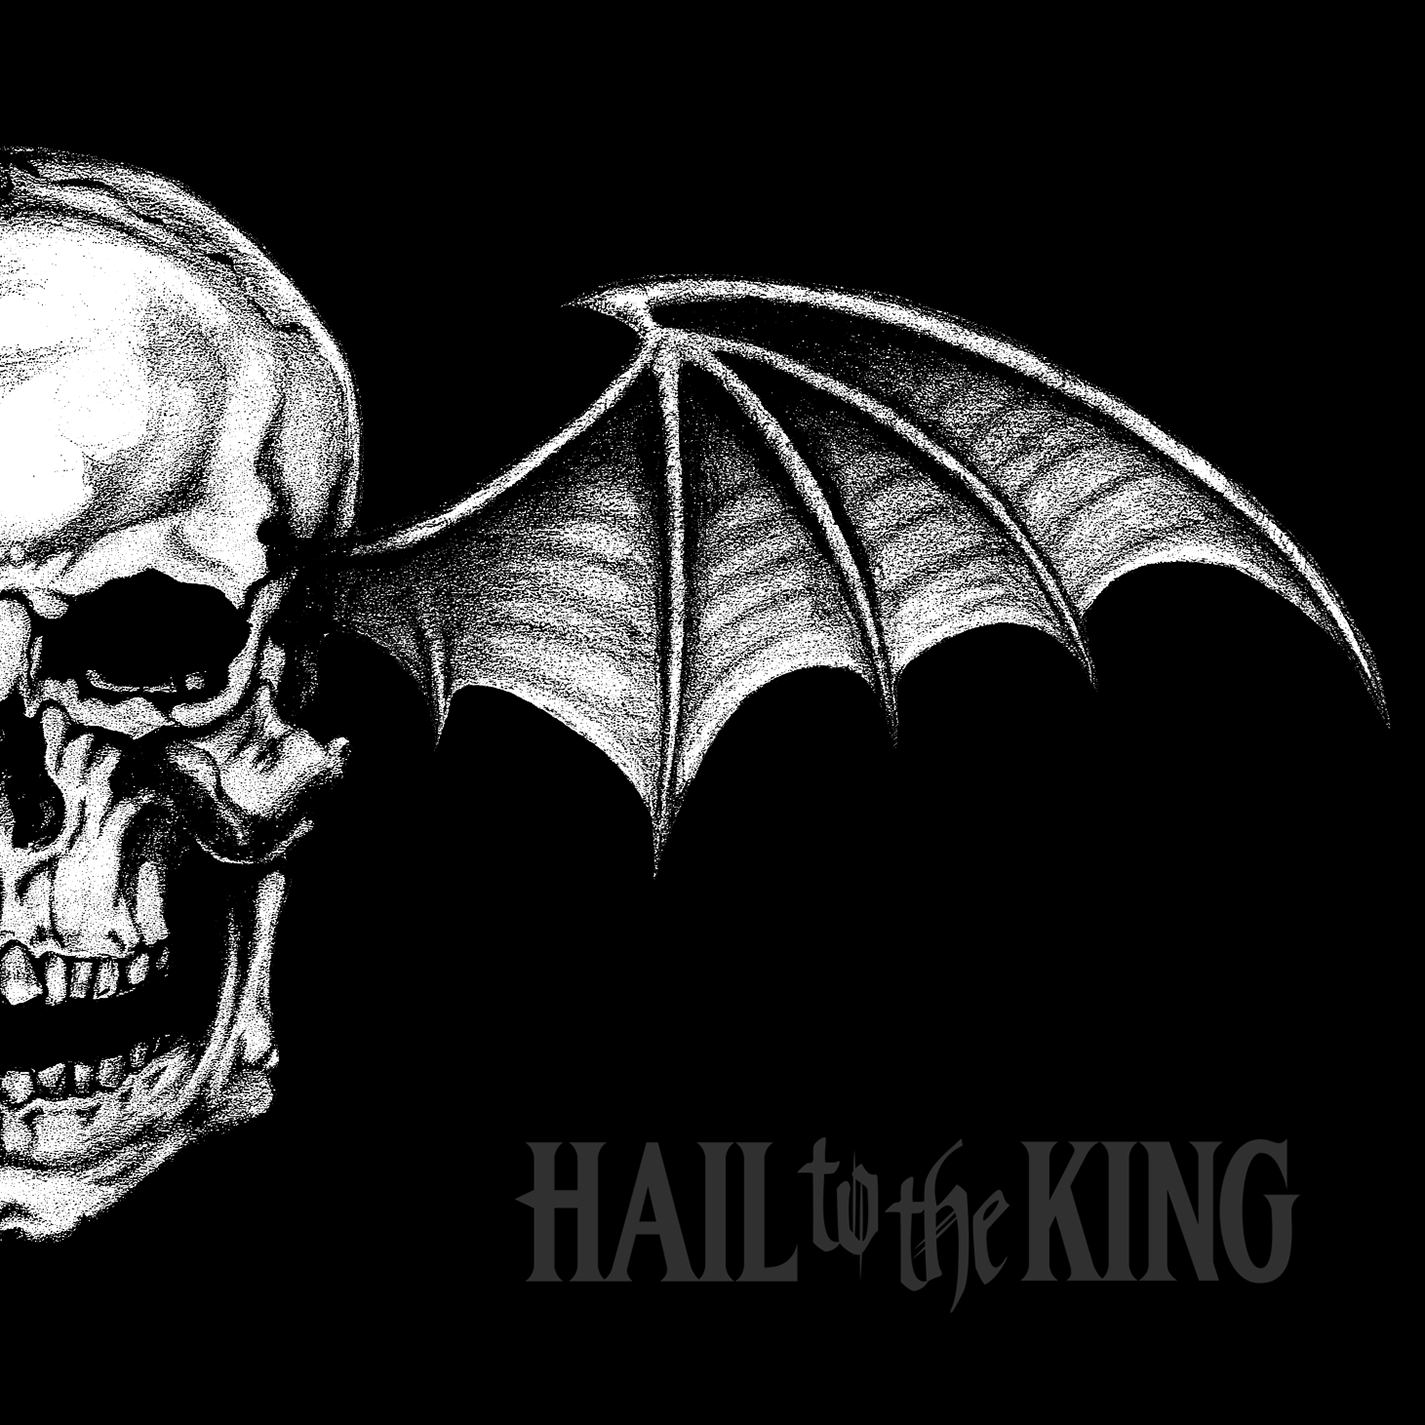 Hail to the king album download monument of endless damnation avenged sevenfold hail to the king 2013 album artwork voltagebd Gallery